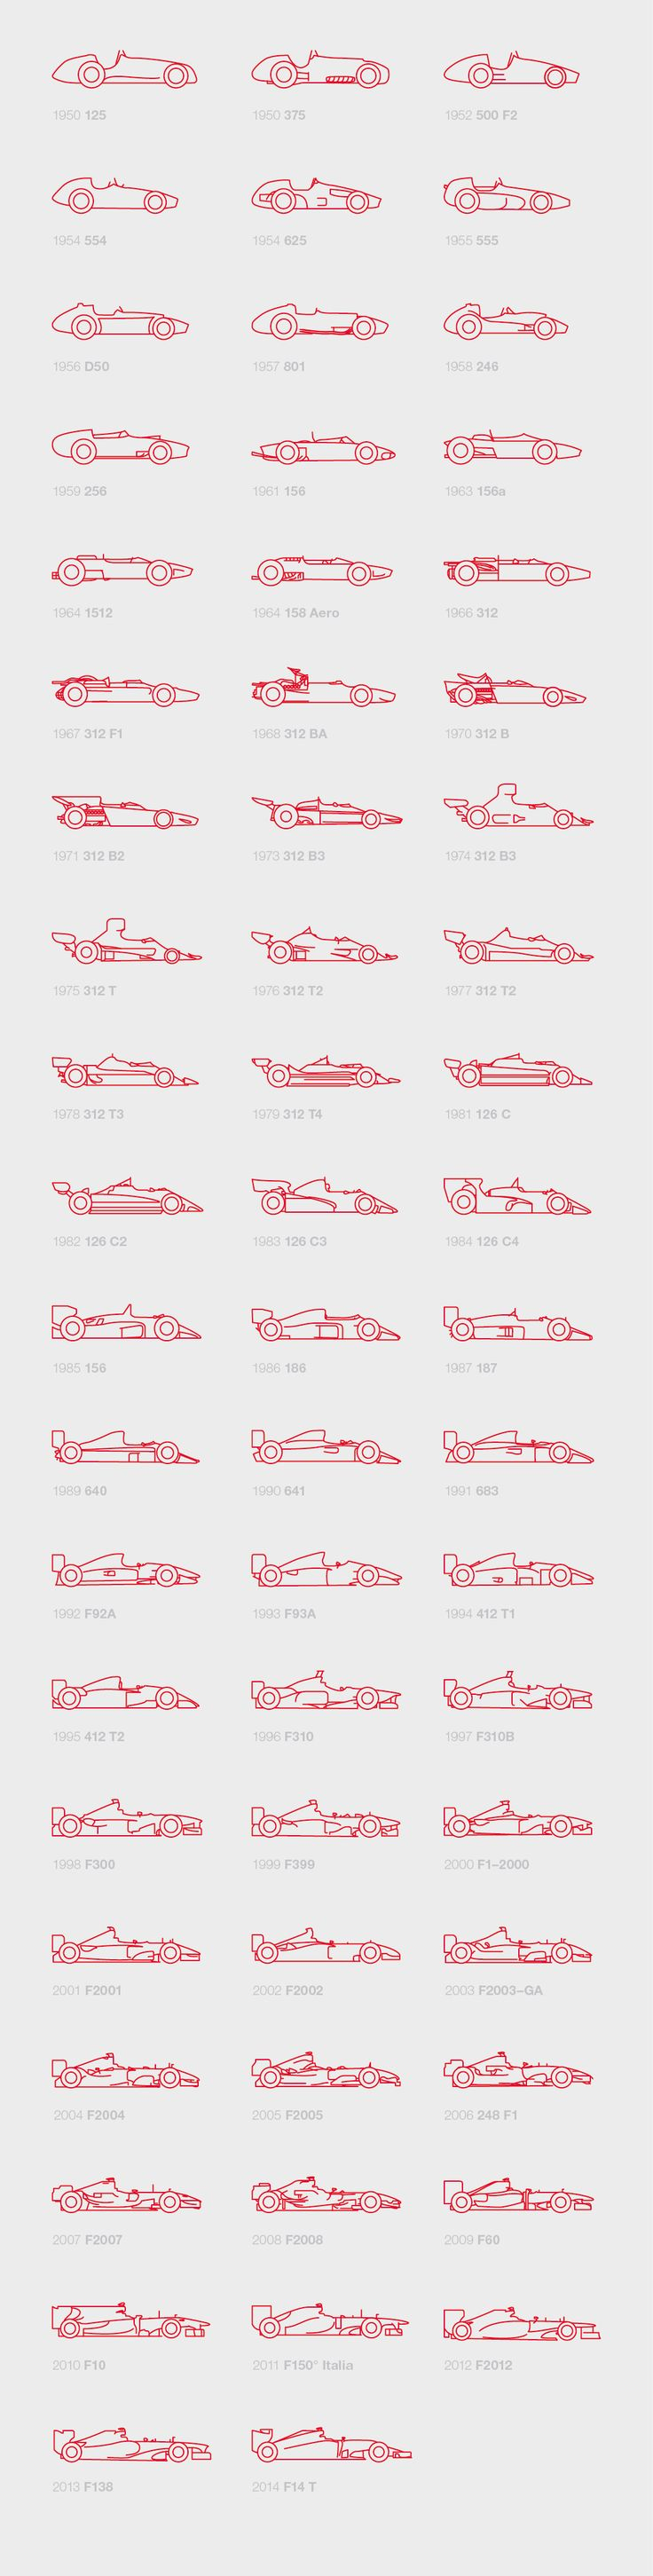 A friend is an F1 fanatic, along with loving Ferrari. As a little gift to them, a wallpaper of all the Scuderia Ferrari F1 cars was created. Also, motorbikes.